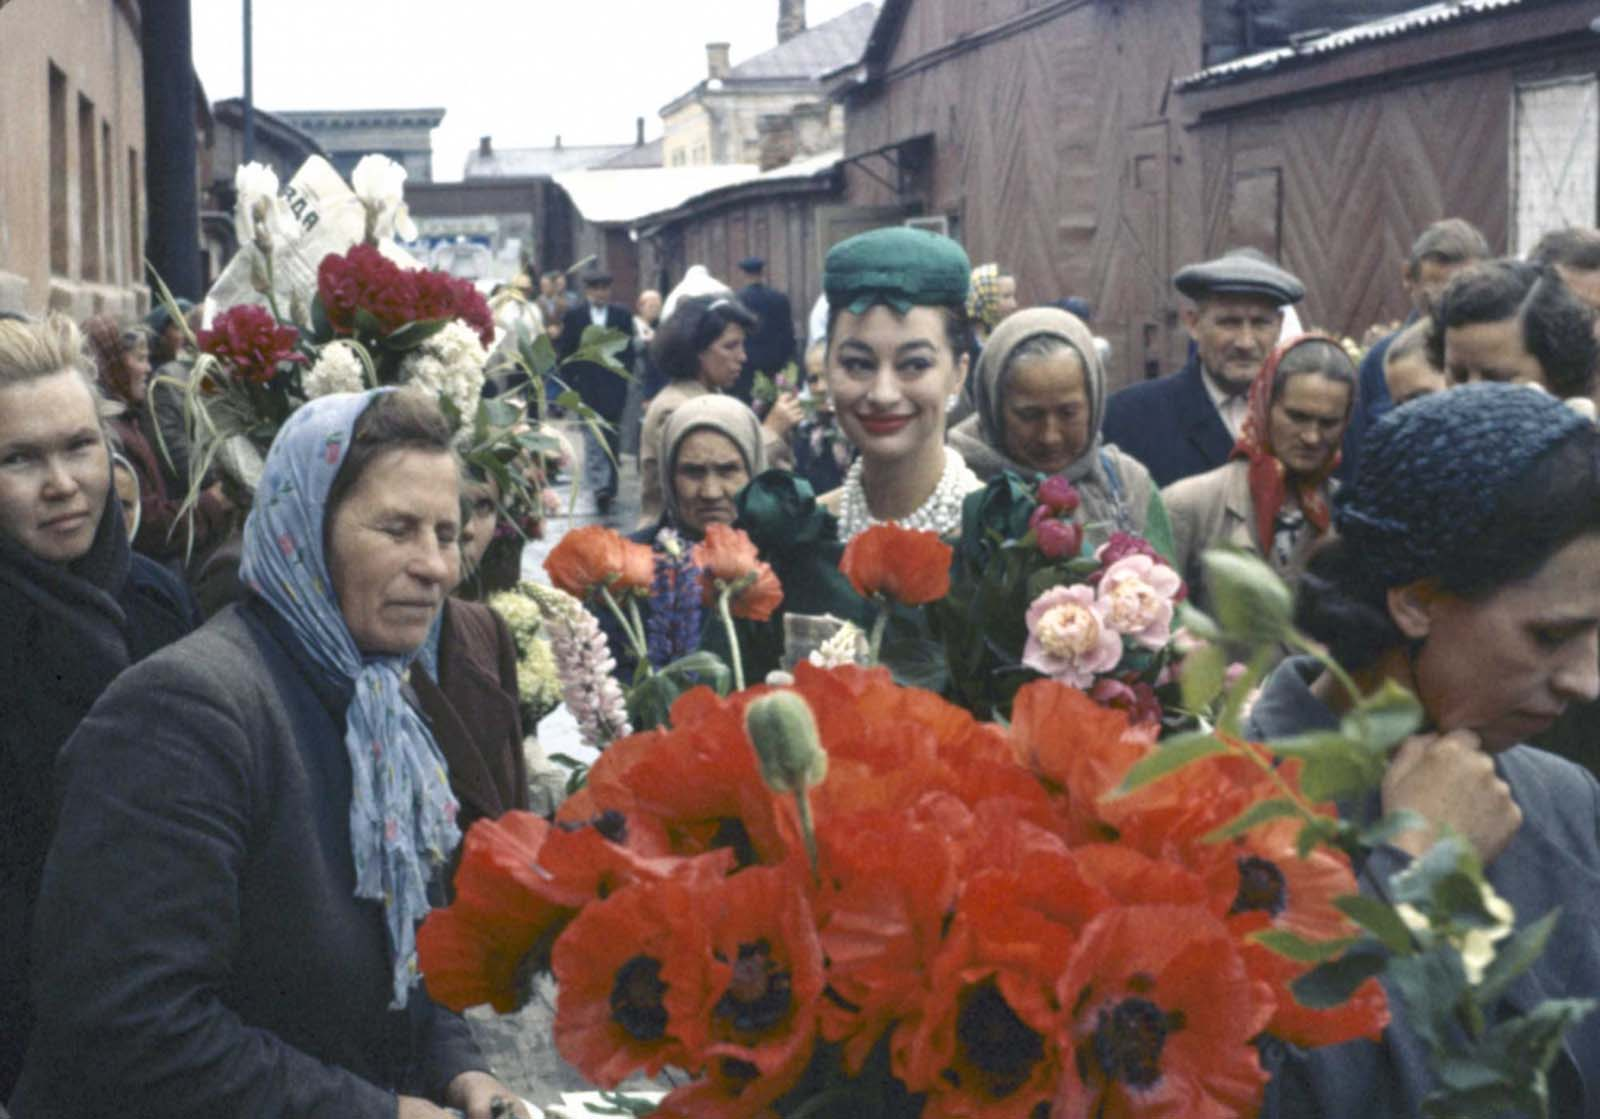 At the flower market at Paviletsky.